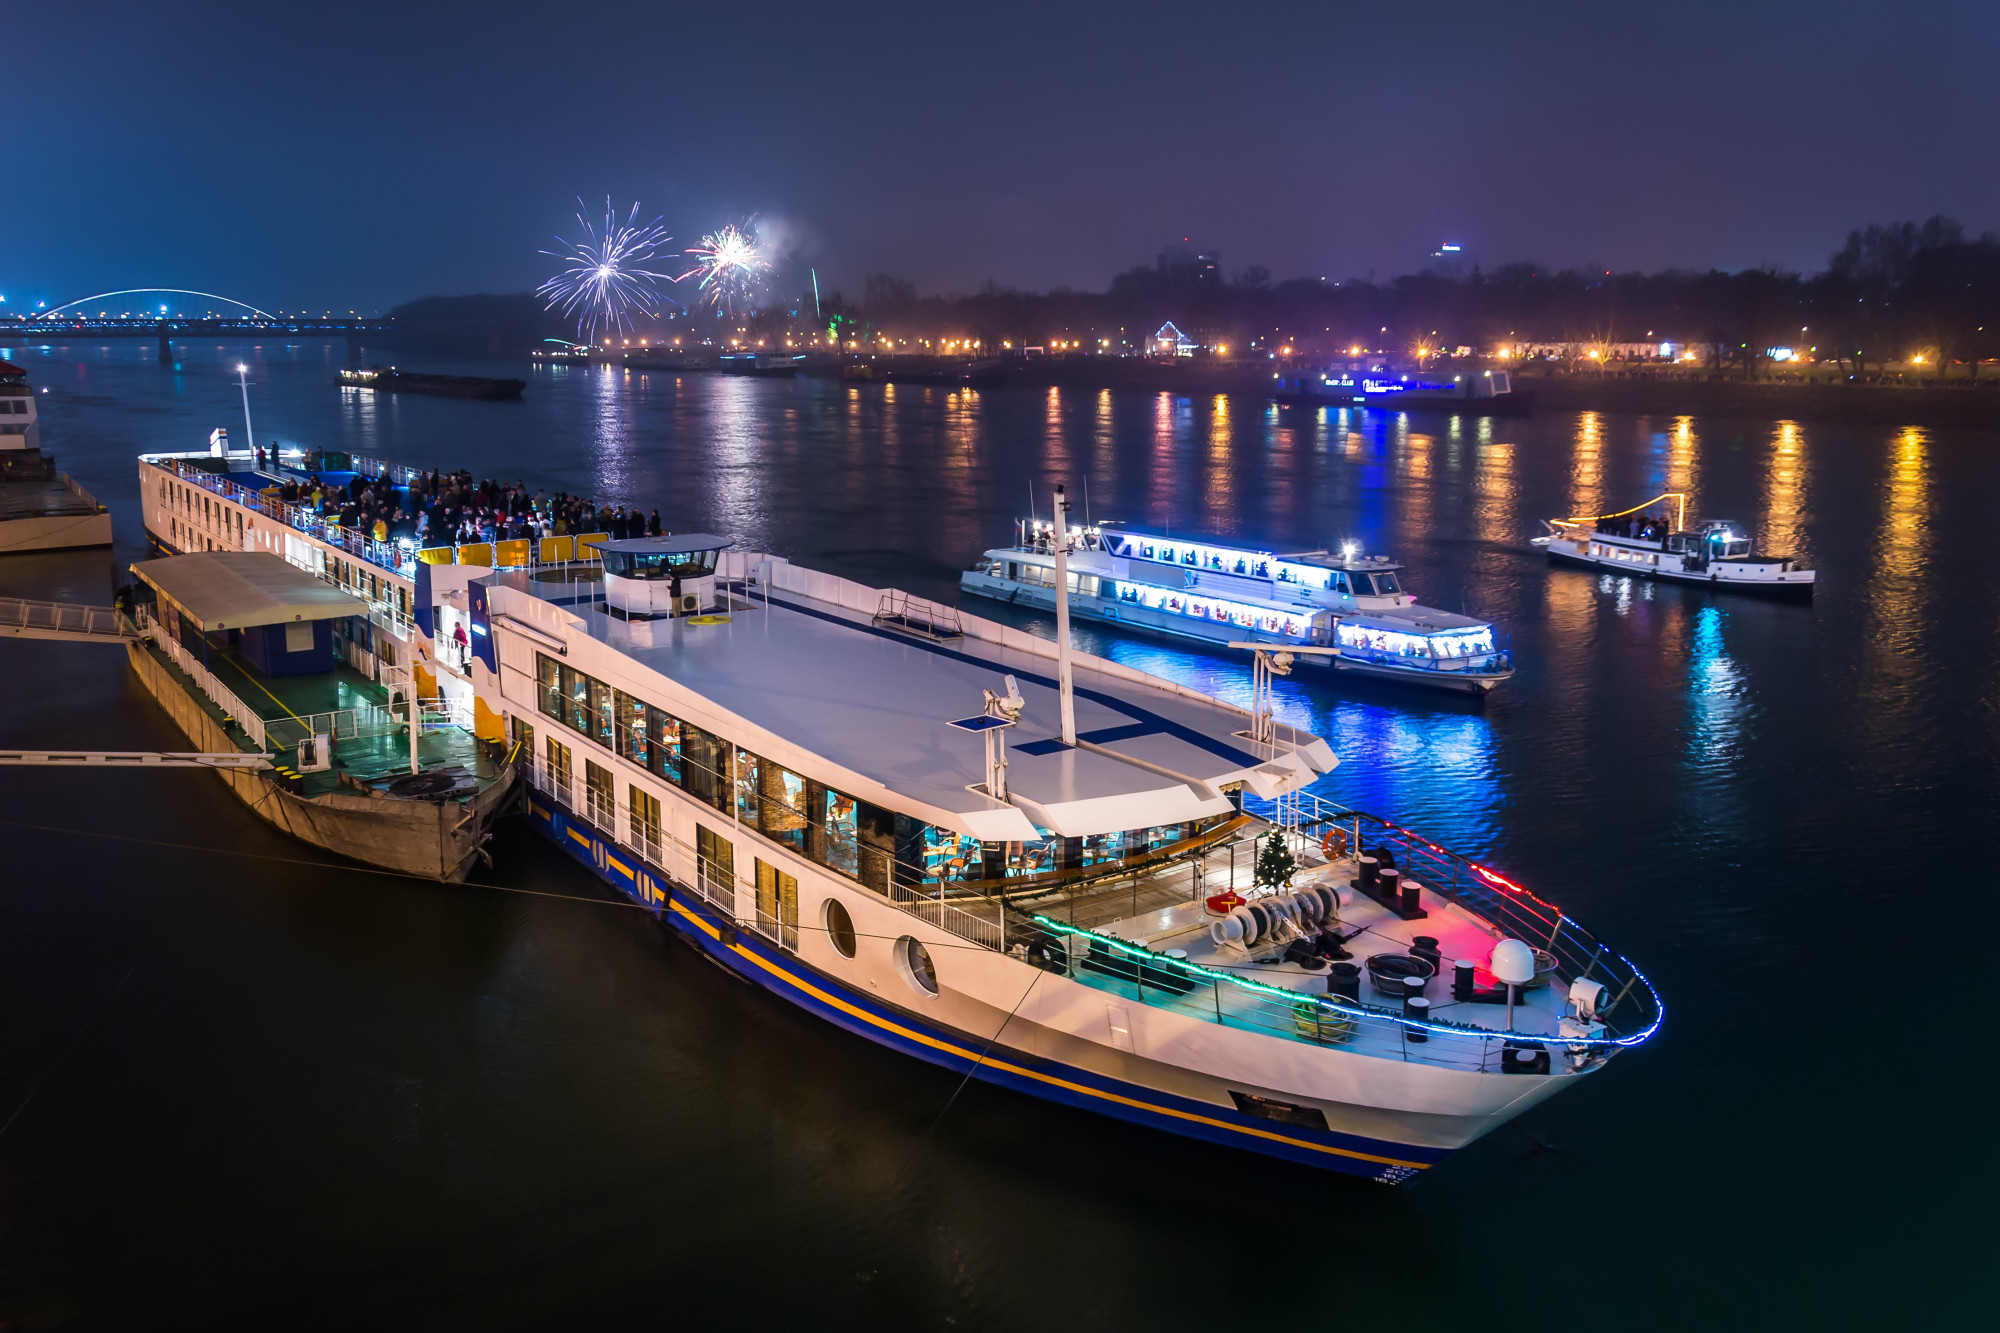 Plan a memorable boat party on the water